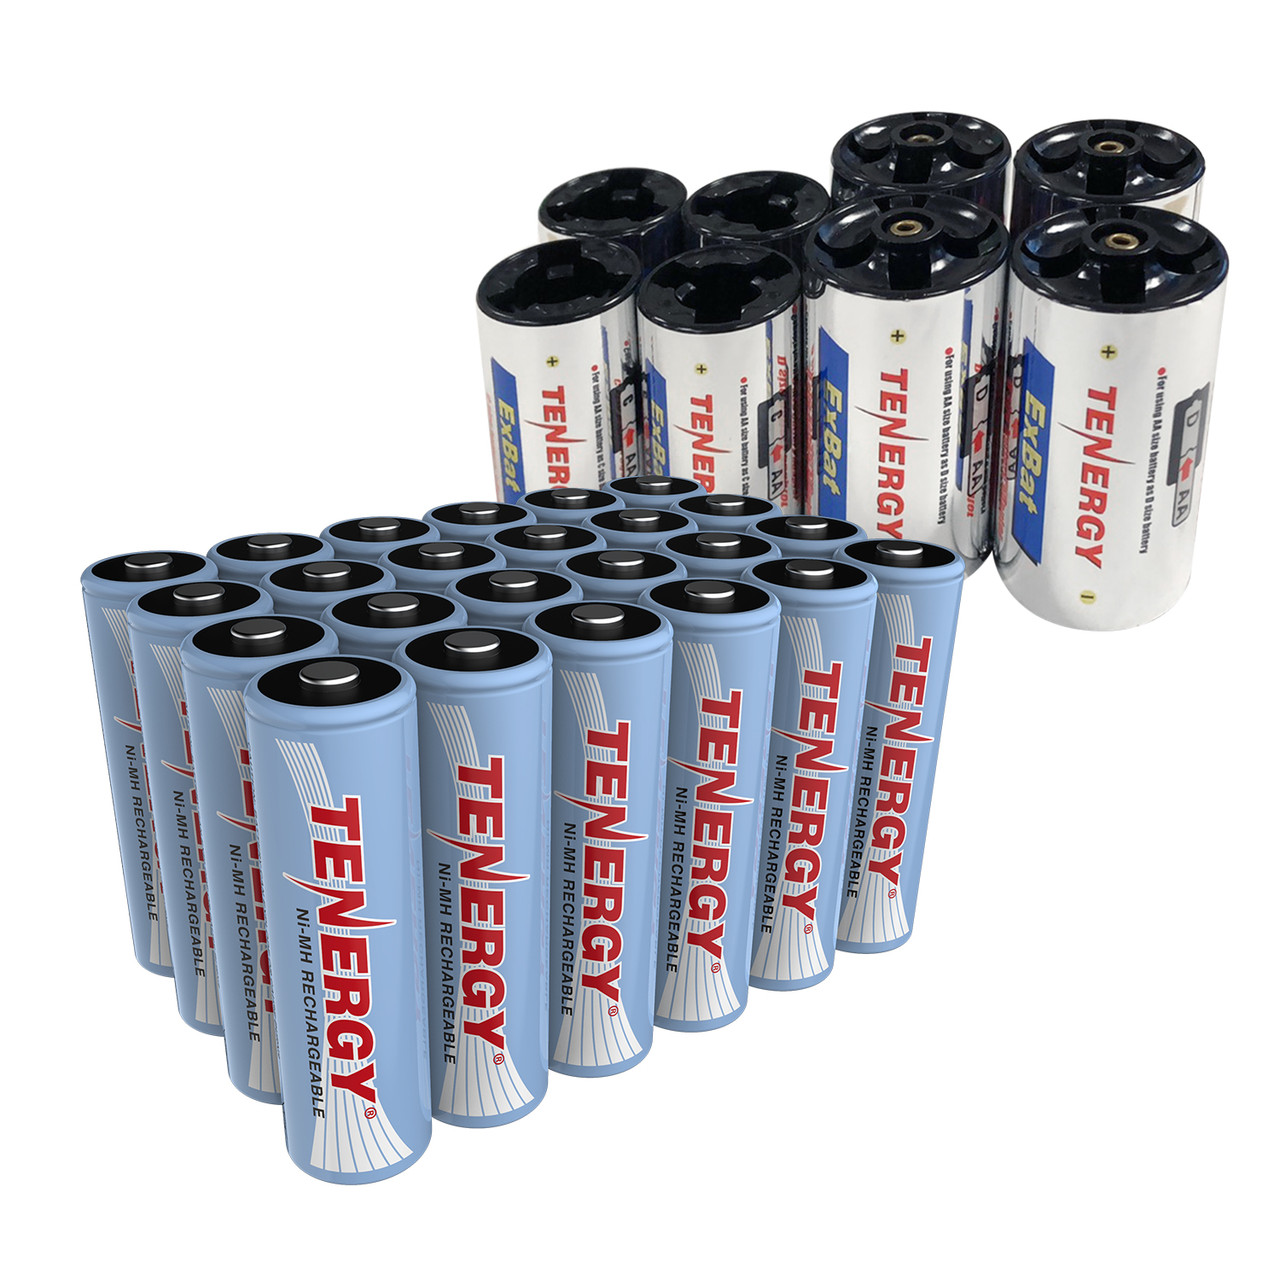 Combo: 24 pcs Tenergy AA 2500mAh NiMH Rechargeable Batteries + 4C & 4D Battery Adaptors